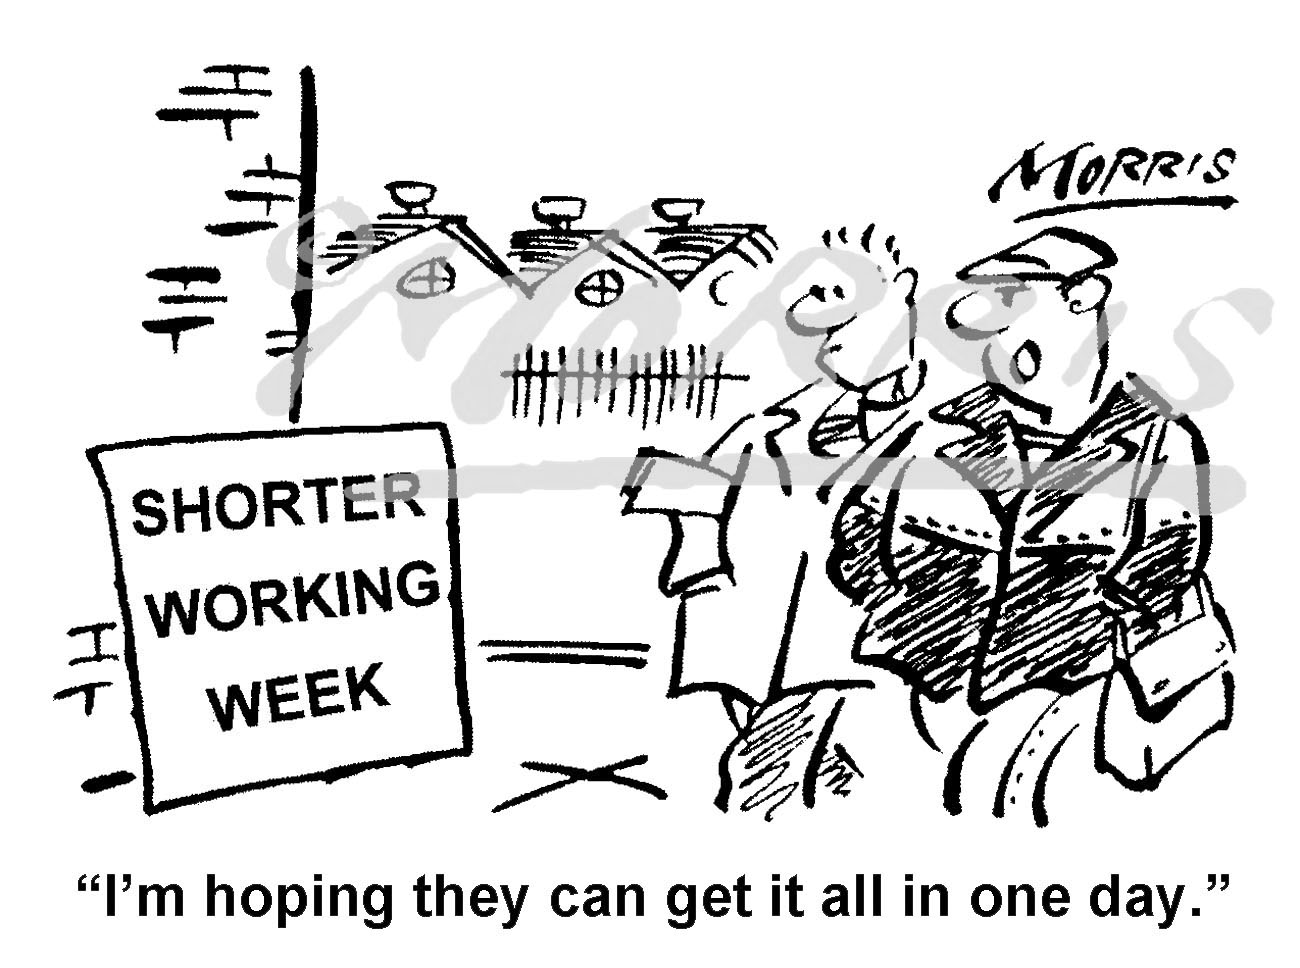 Shorter working hours cartoon – Ref: 8417bw